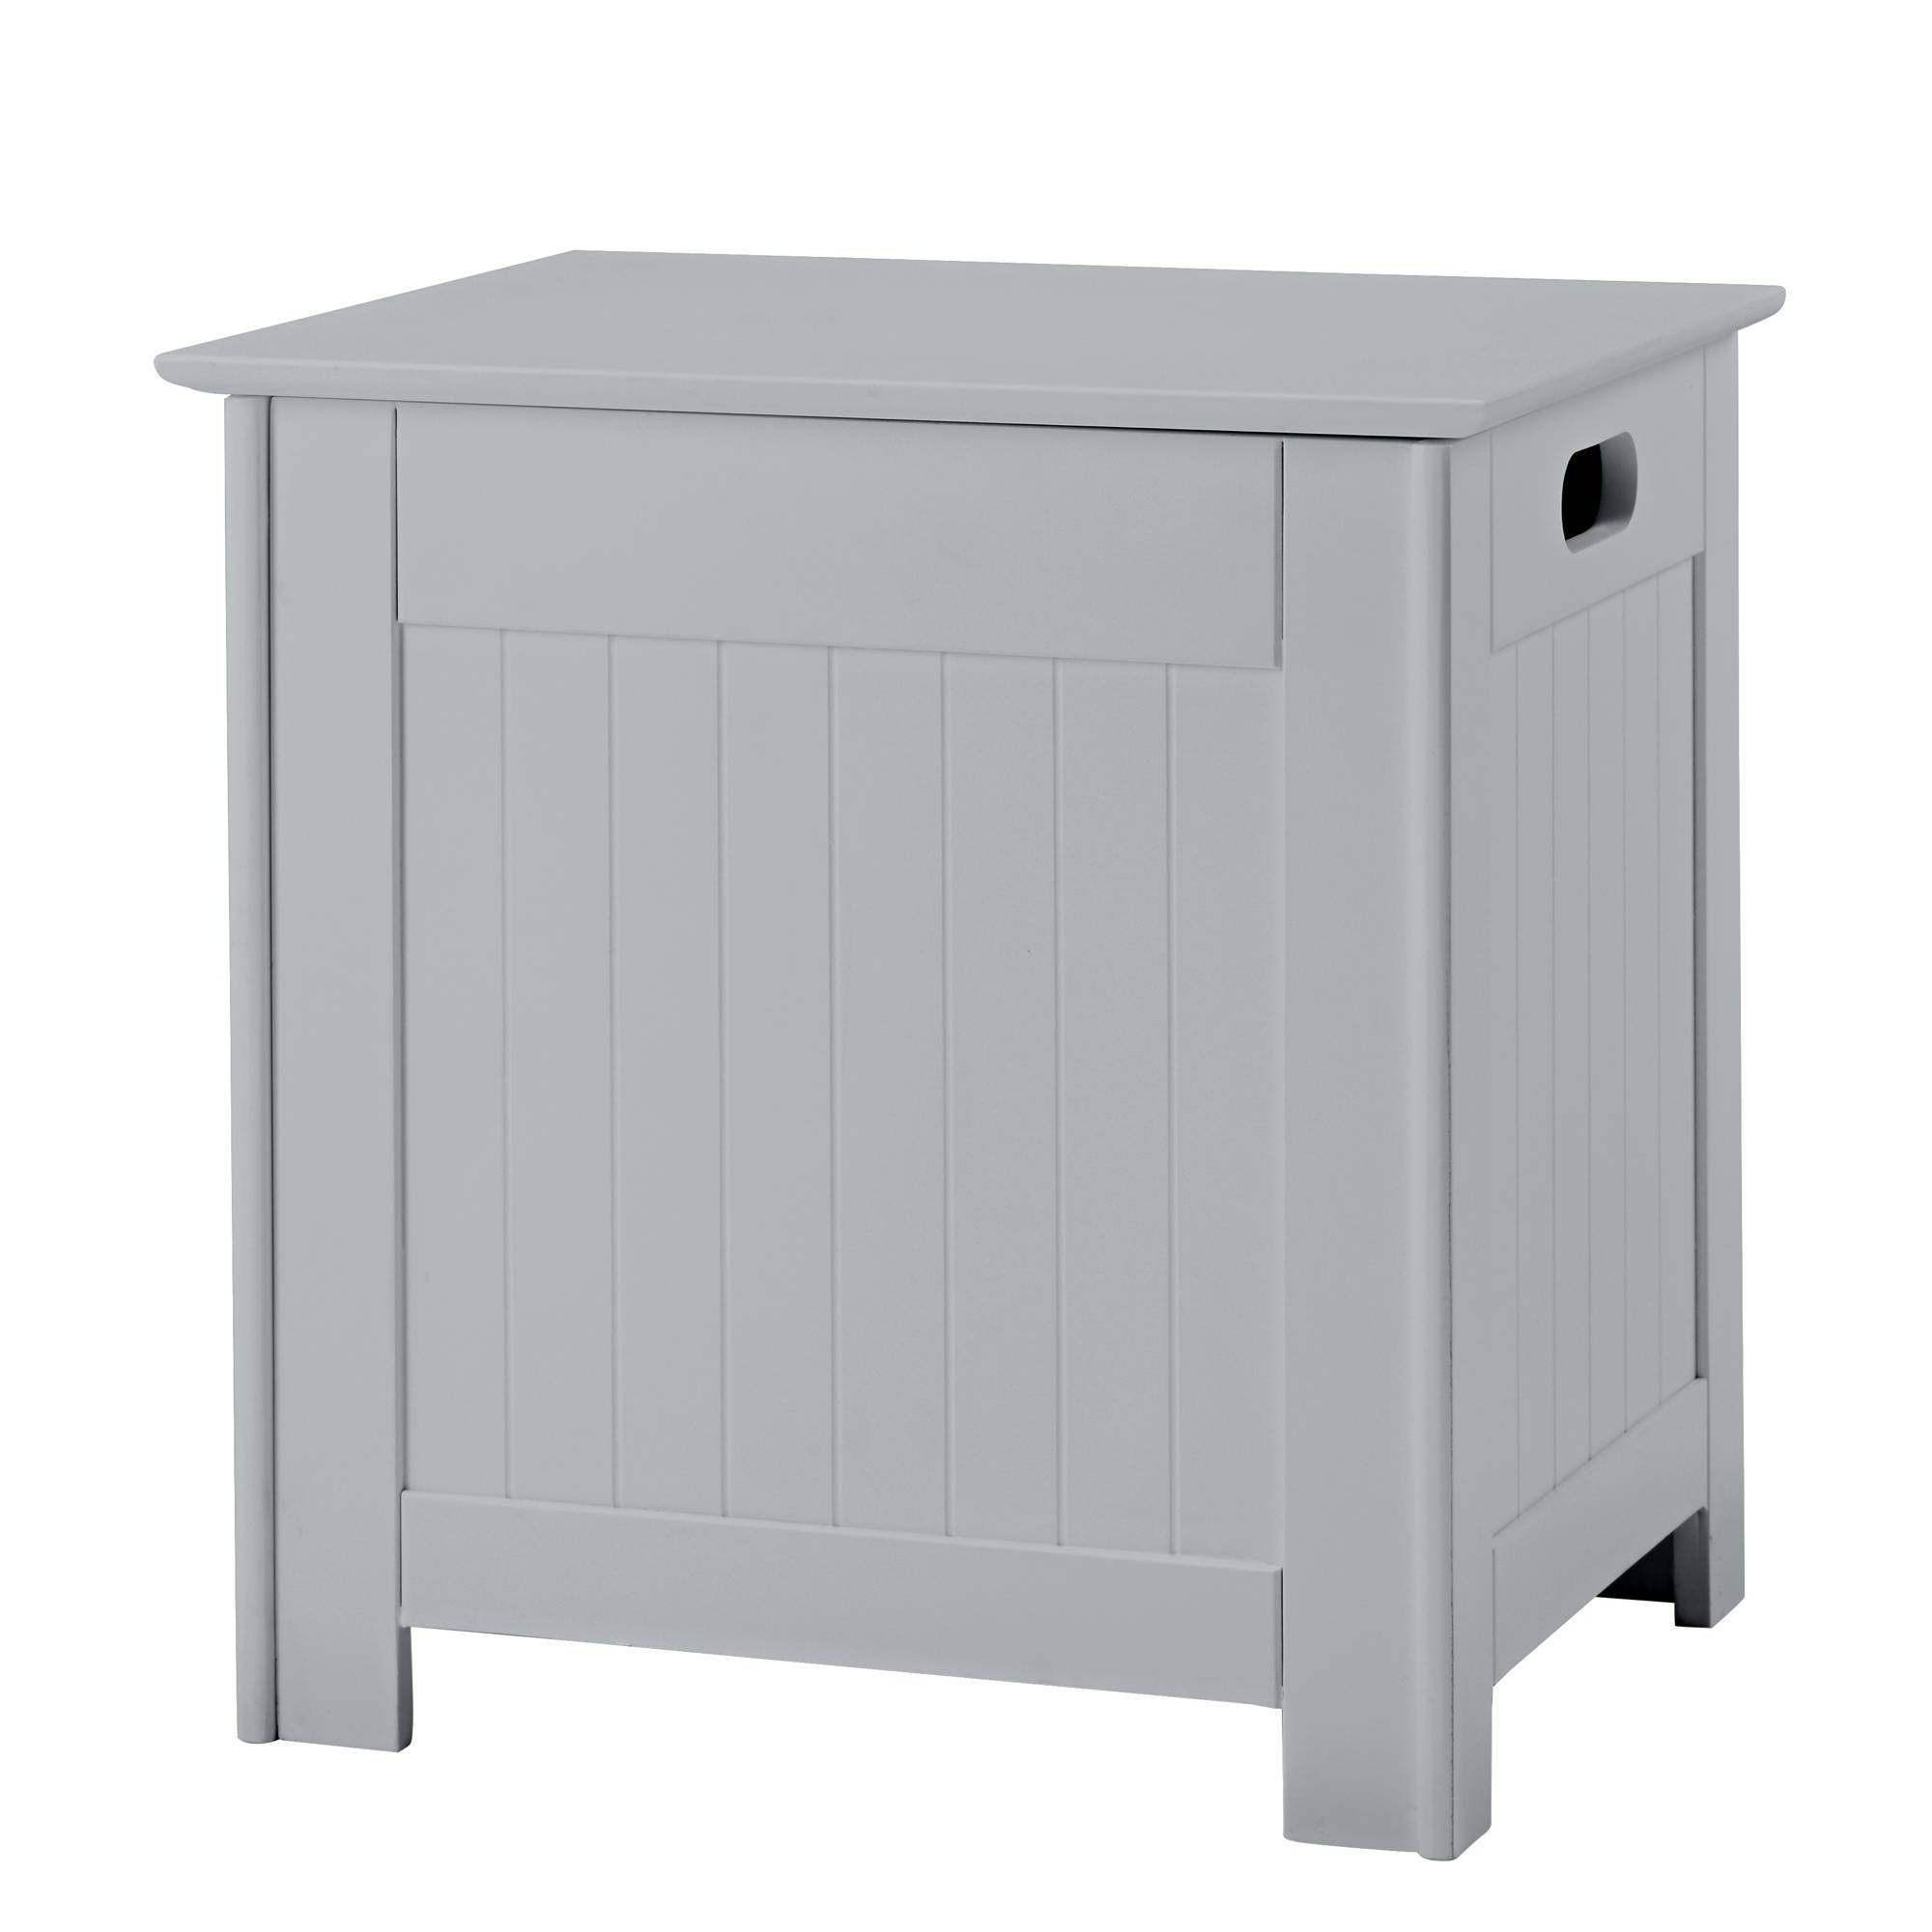 Kodiak Grey Laundry Box - Ezzo